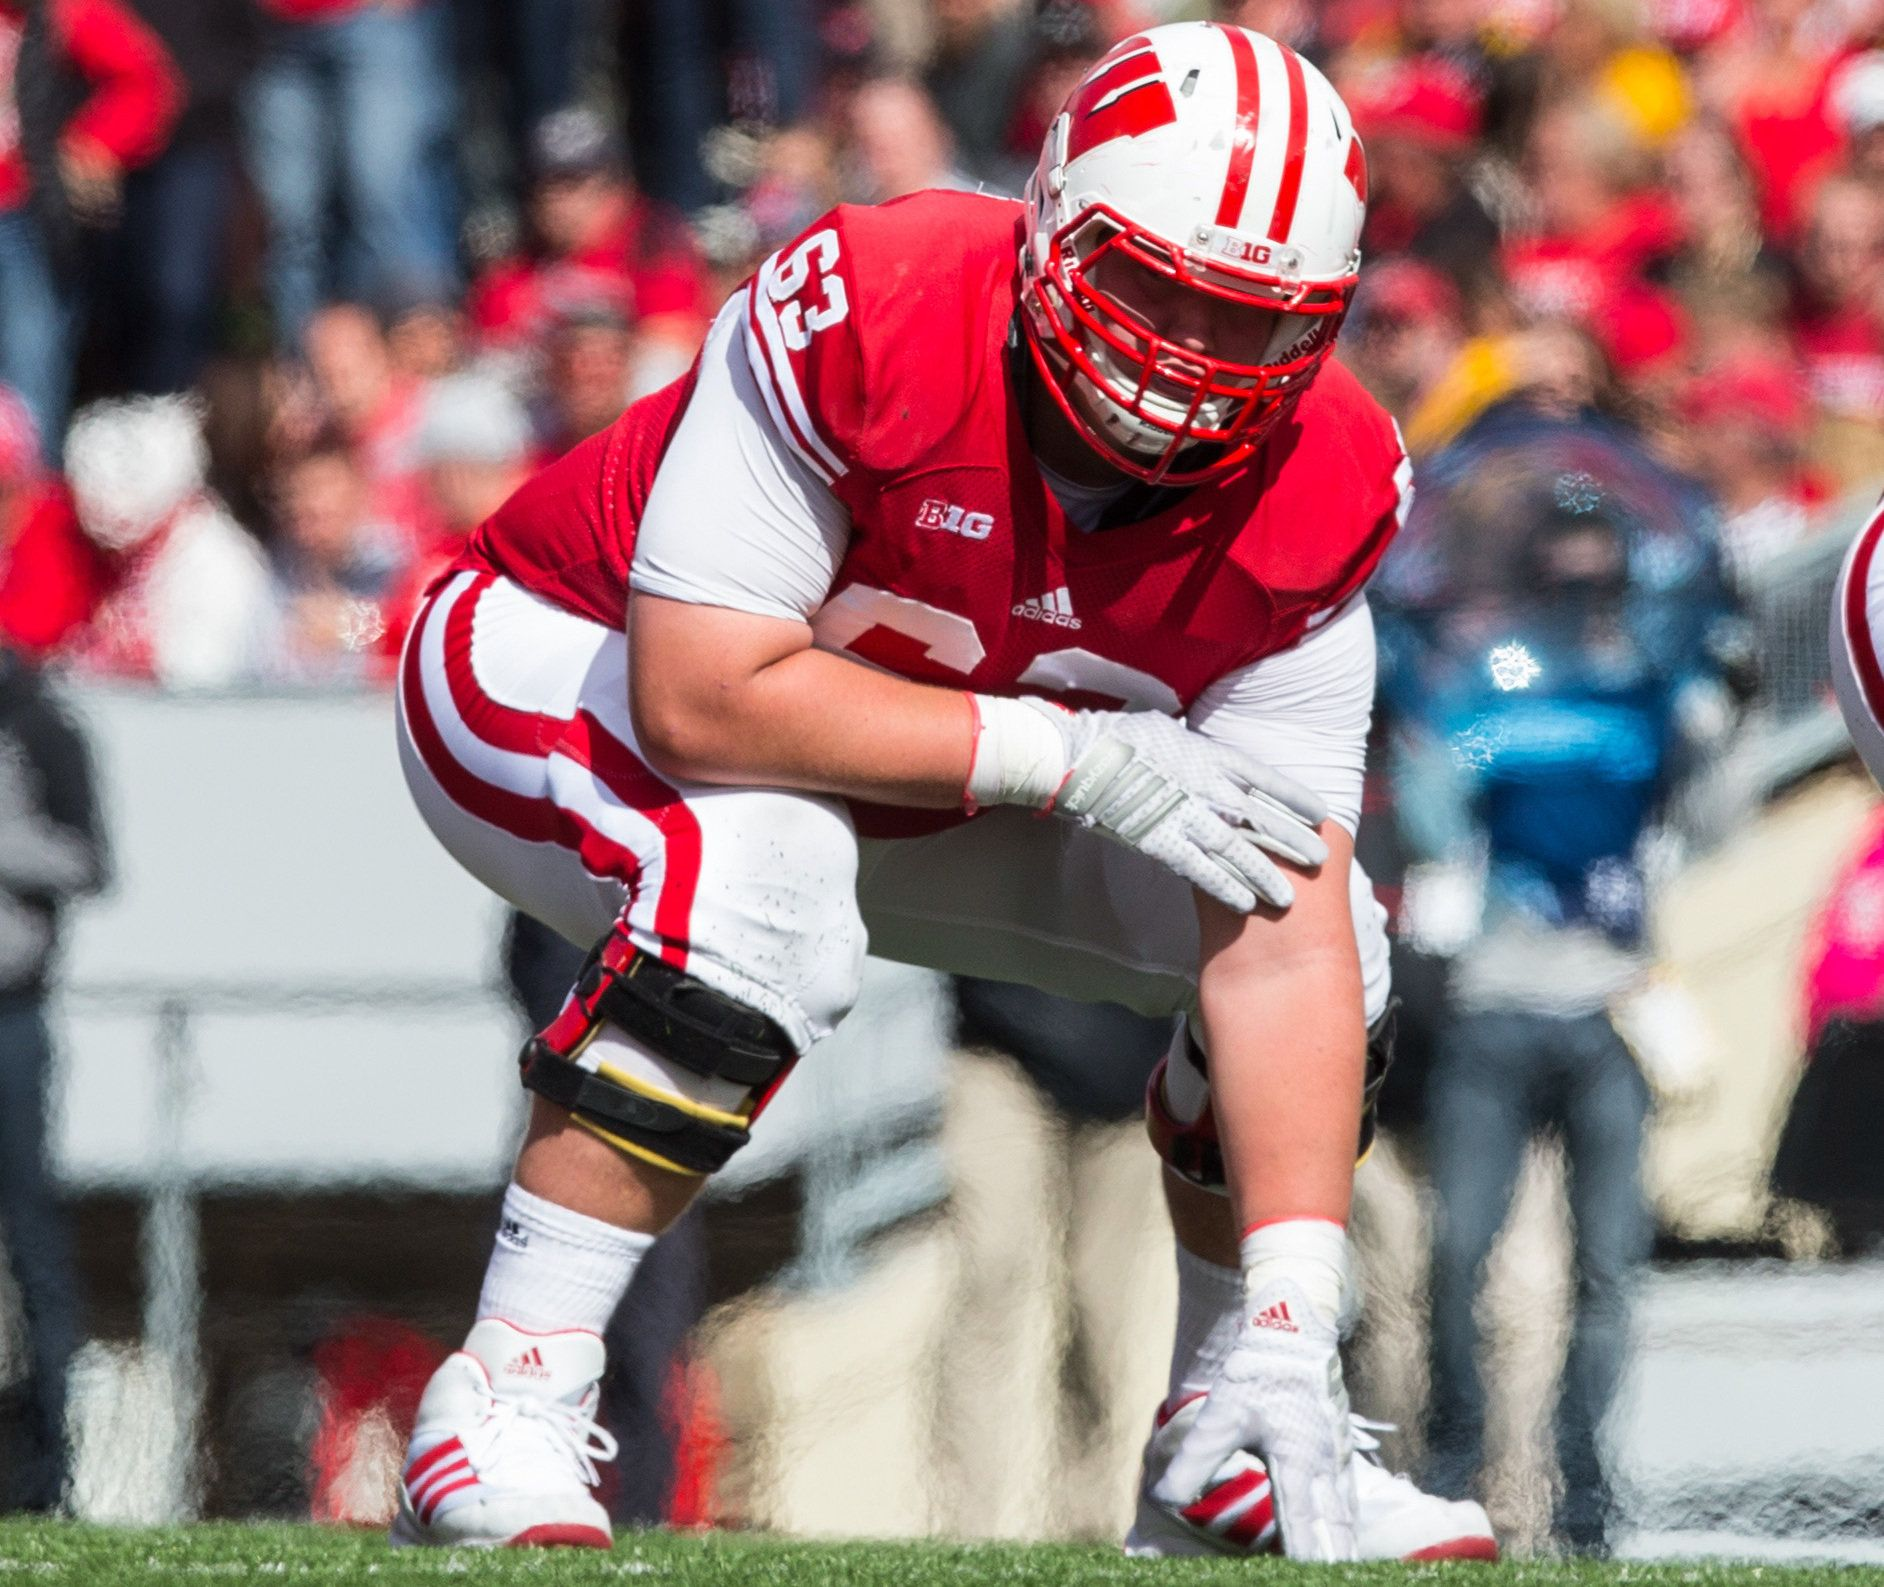 Most Indispensable Badger No 6 Wisconsin Football No 6 Athlete